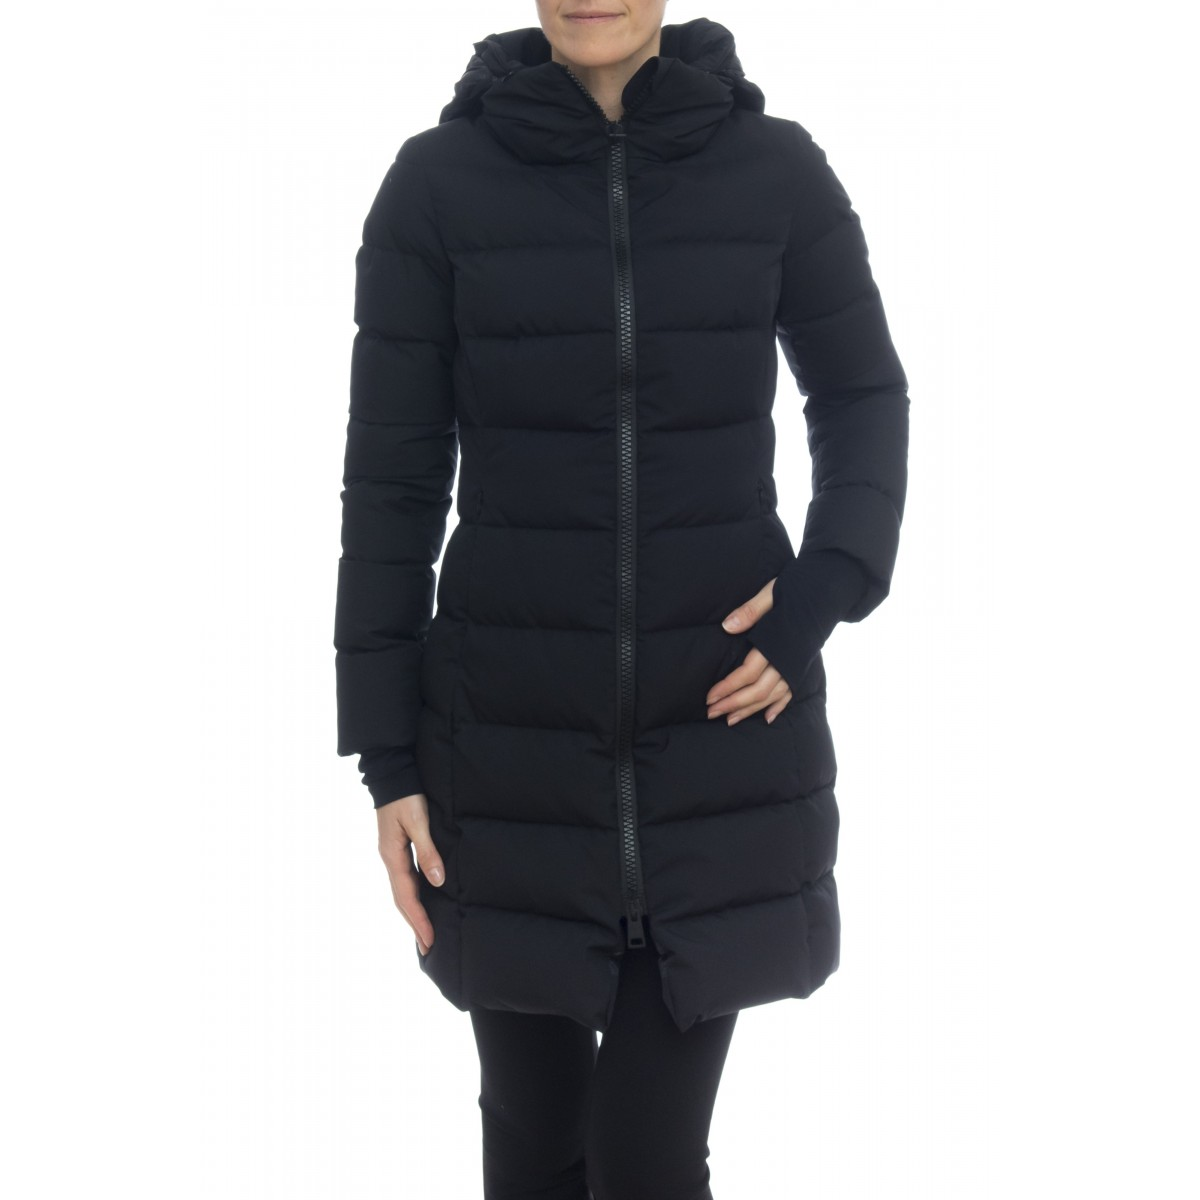 Down jacket - PI080DL 11106 thin quilted laminar (ex pi056dl)